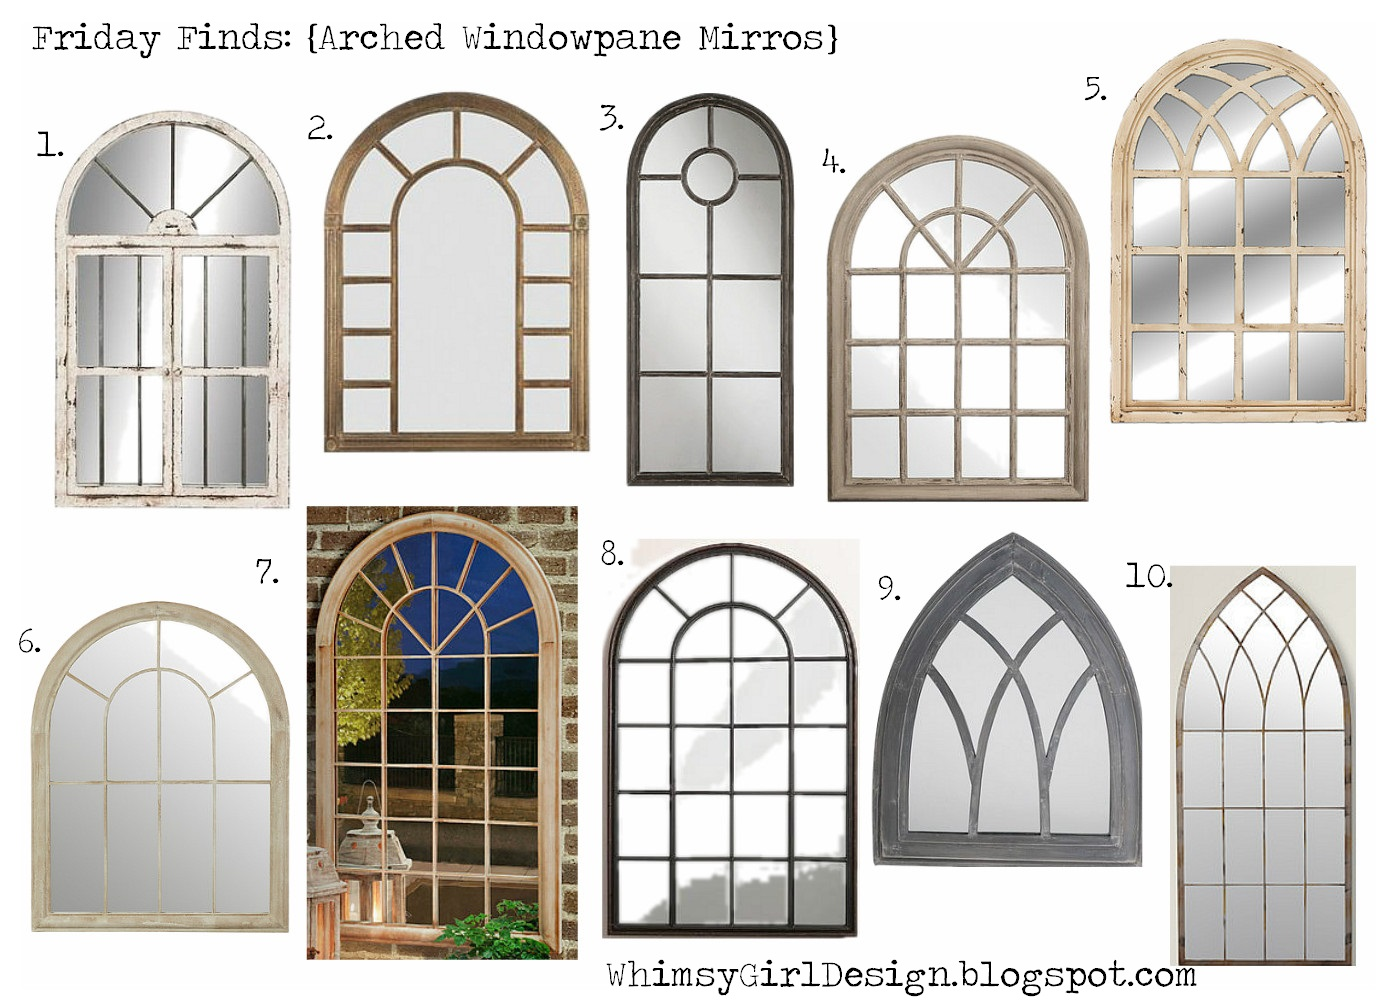 Whimsy girl friday finds arch windowpane mirrors for Arch window decoration